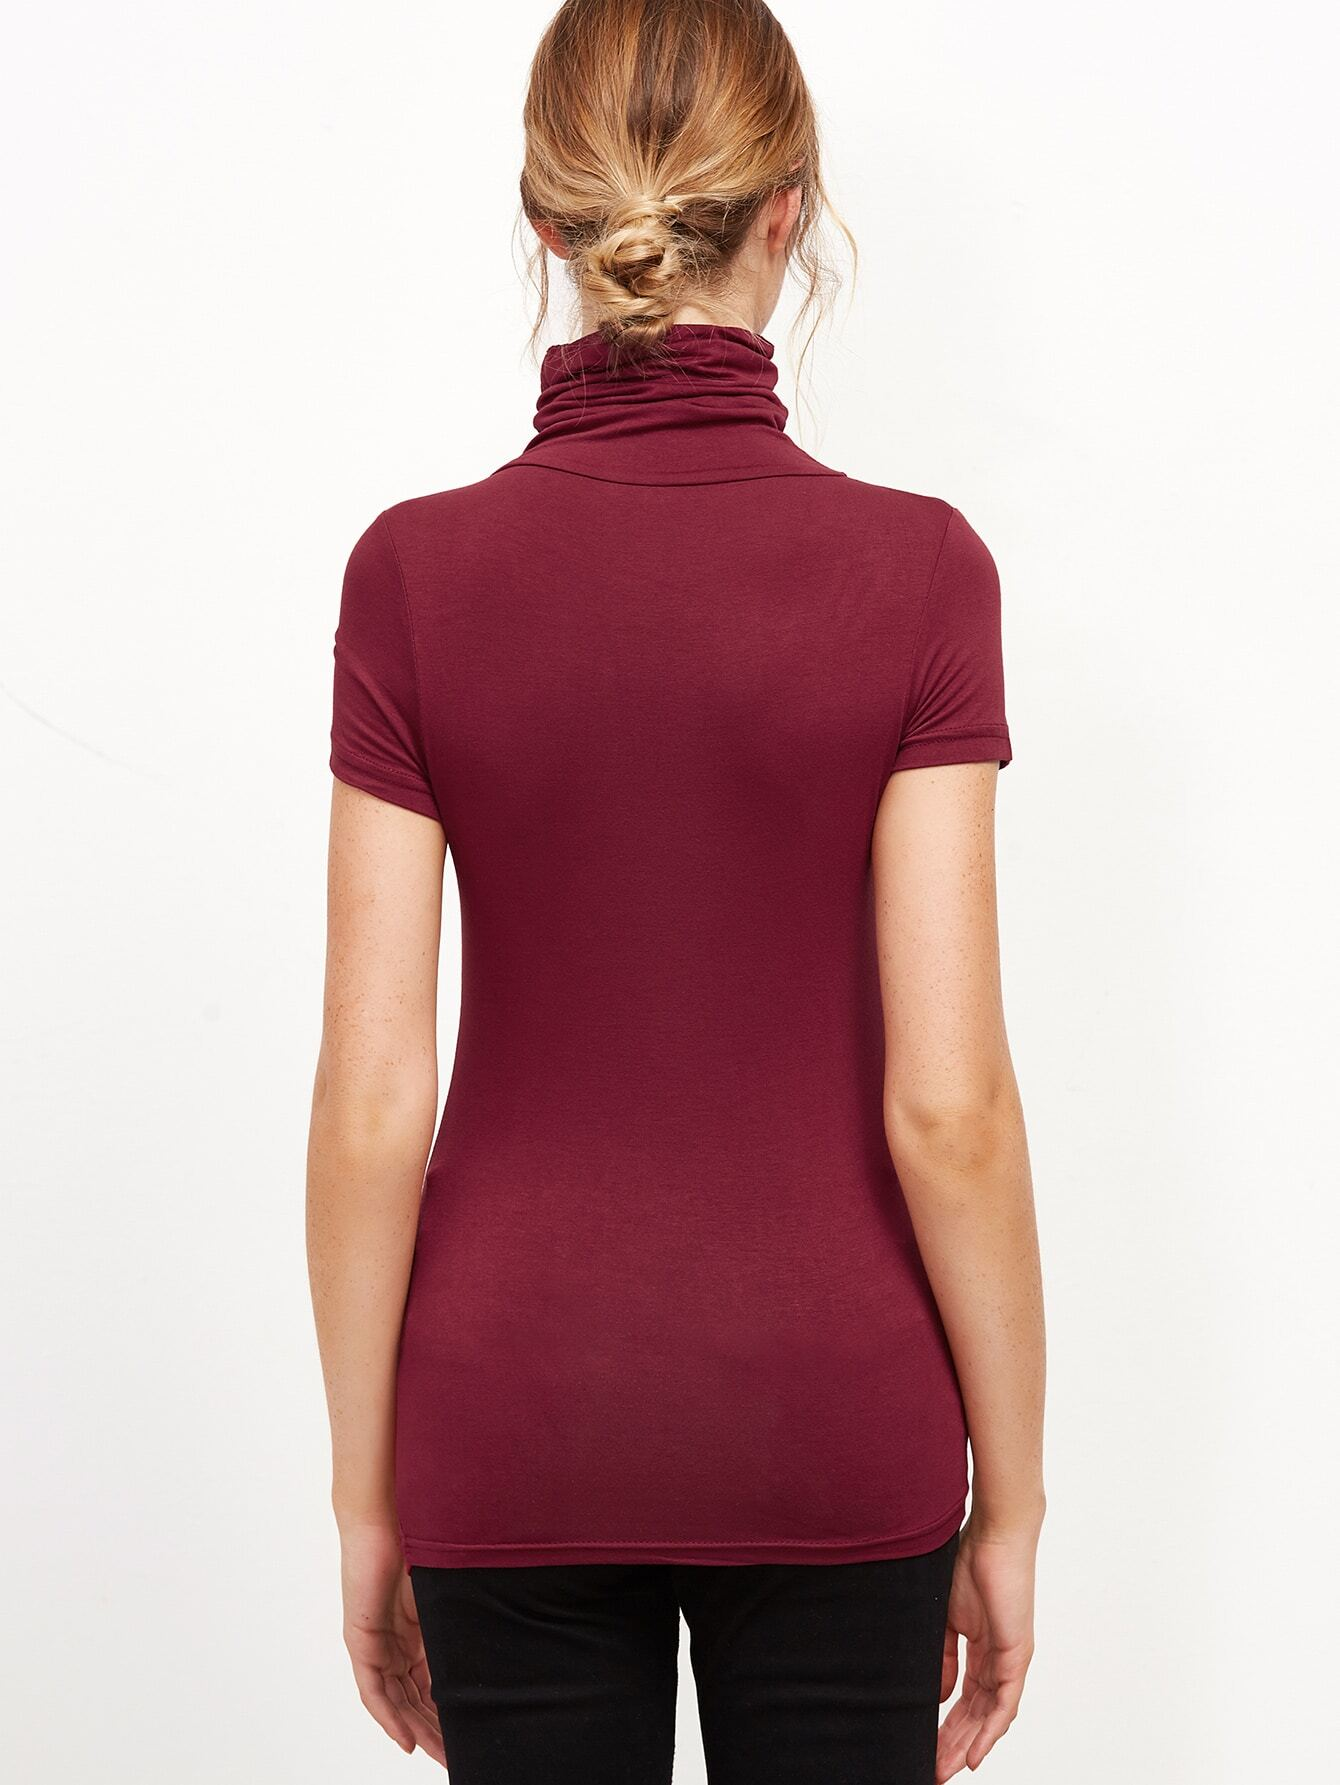 Burgundy high neck tight t shirt for High neck tee shirts